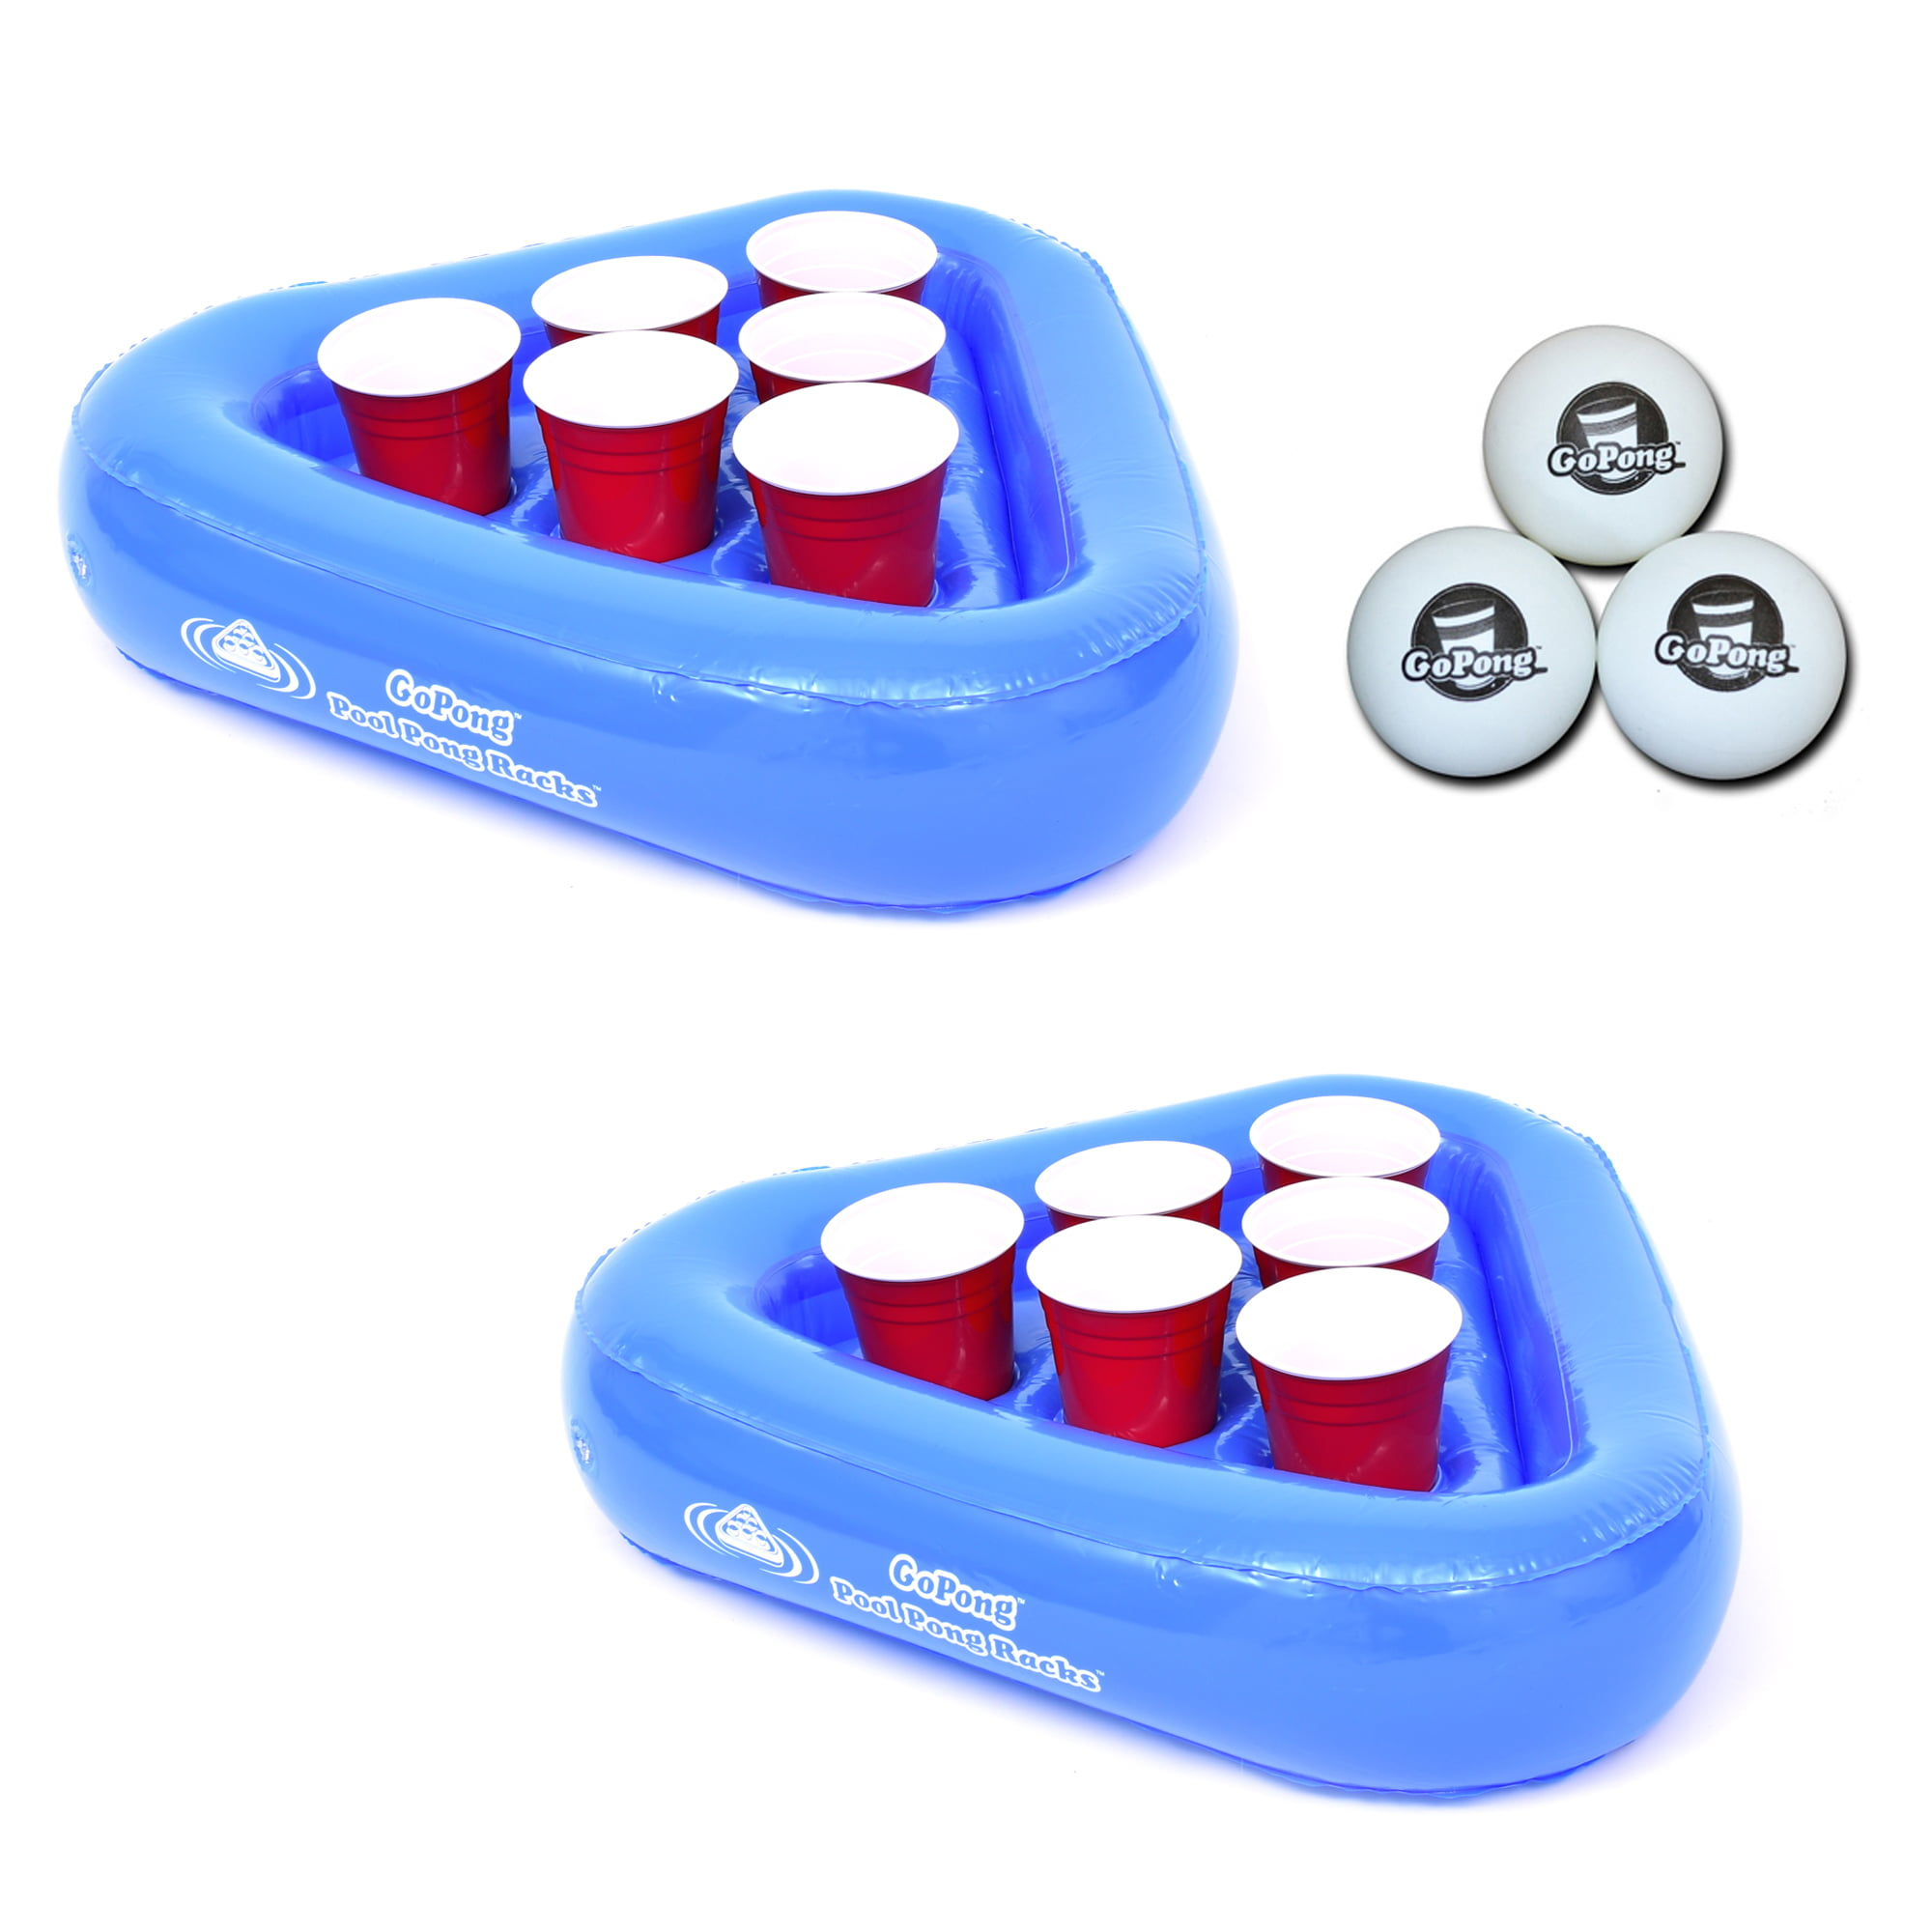 GoPong Pool Pong Rack Floating Beer Pong Set, Includes 2 Rafts and 3 Pong Balls by P&P Imports LLC